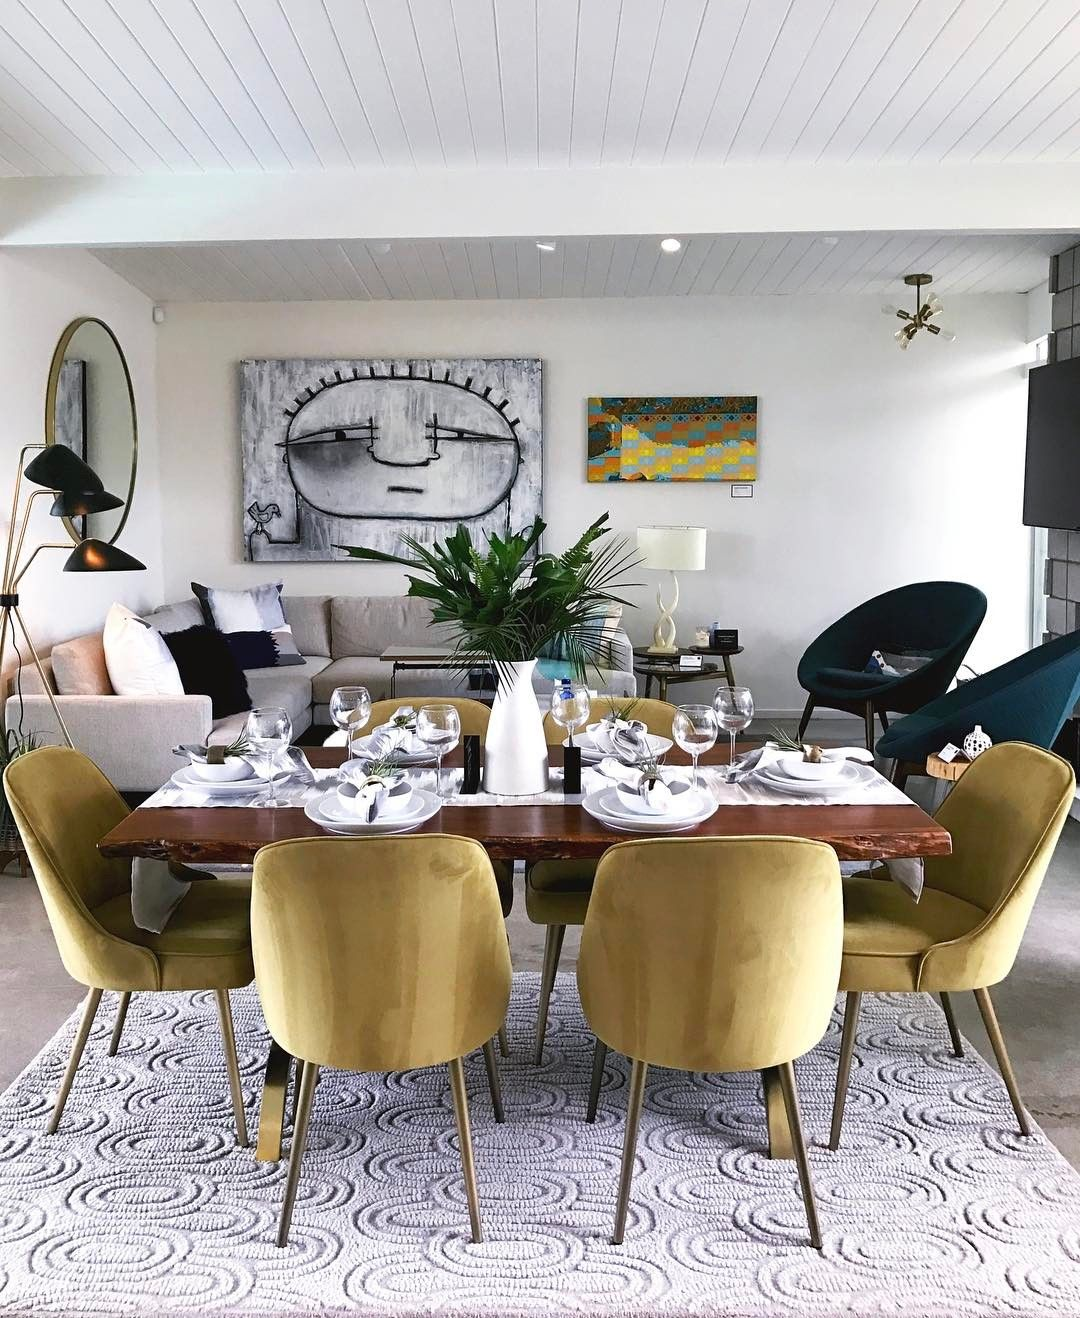 West Elm House | Yellow Green Velvet Chairs | Velvet Dining Room Chairs | Velvet Dining Chairs | Dining Room Inspiration | Dining Room Ideas | Dining Room Decor | Open Concept Living Room Dining Room Idea